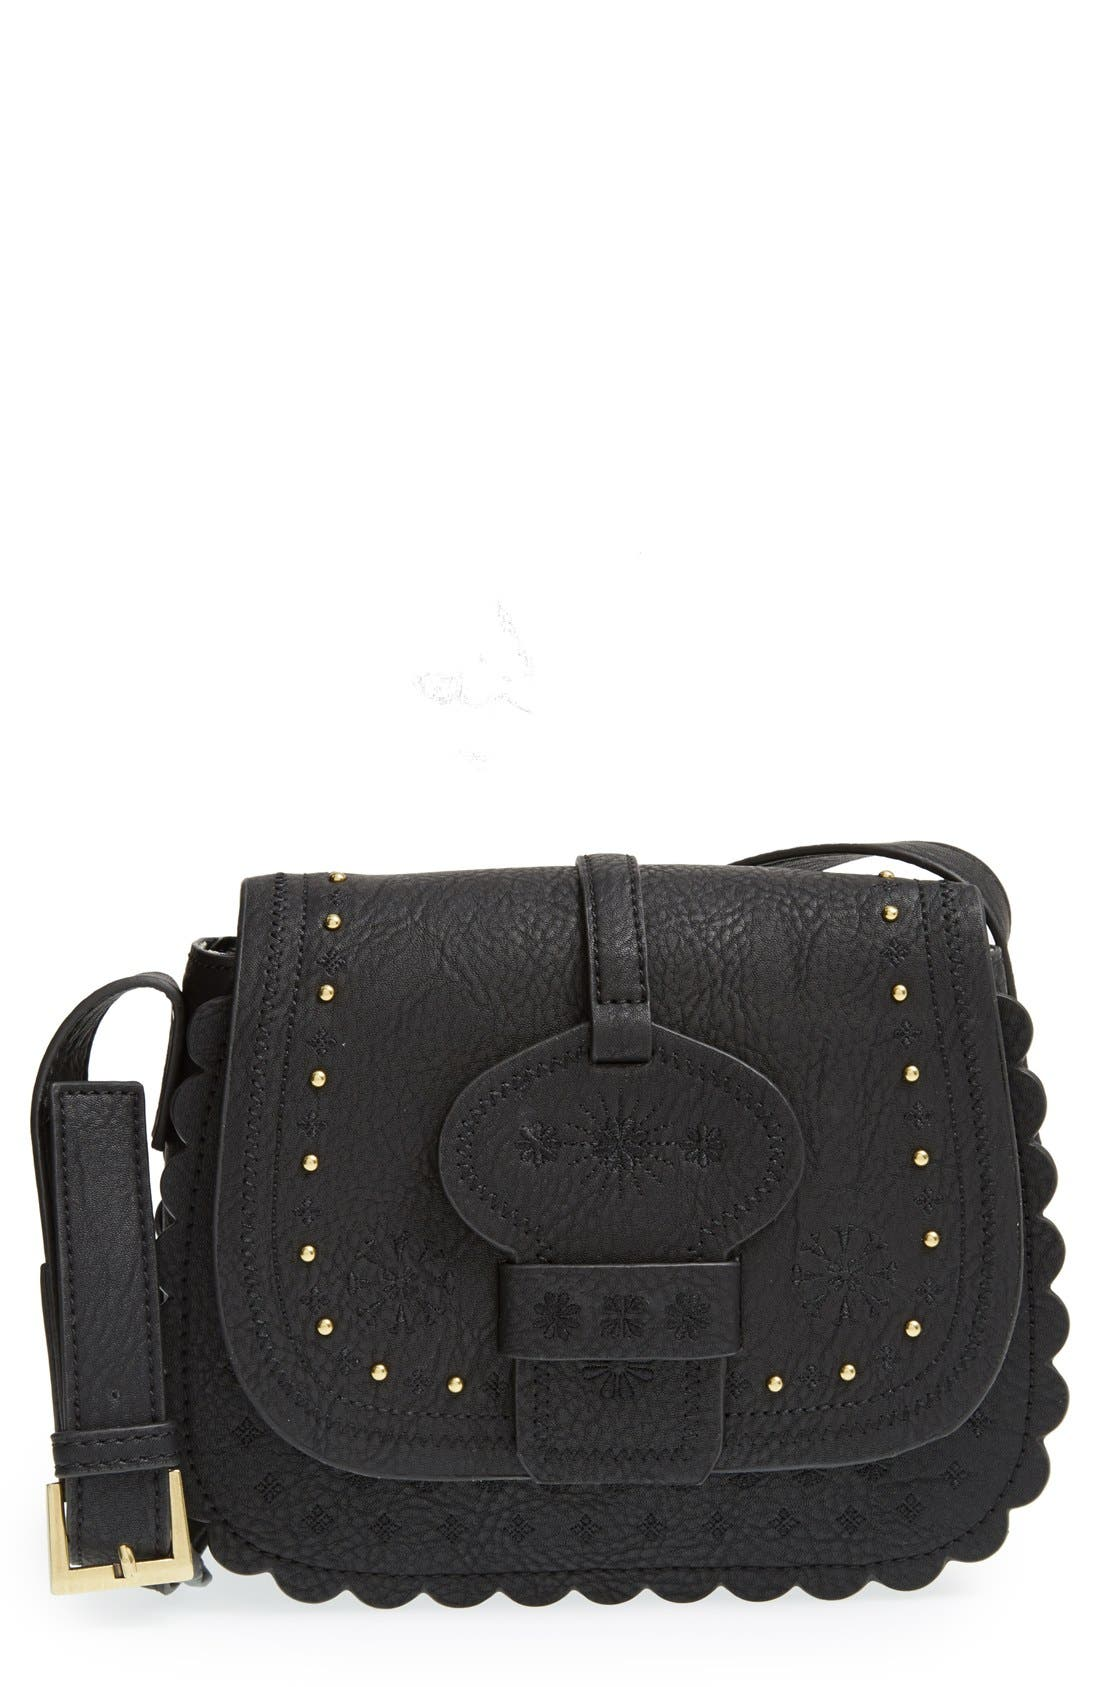 Alternate Image 1 Selected - Big Buddha Embroidered Western Crossbody Bag